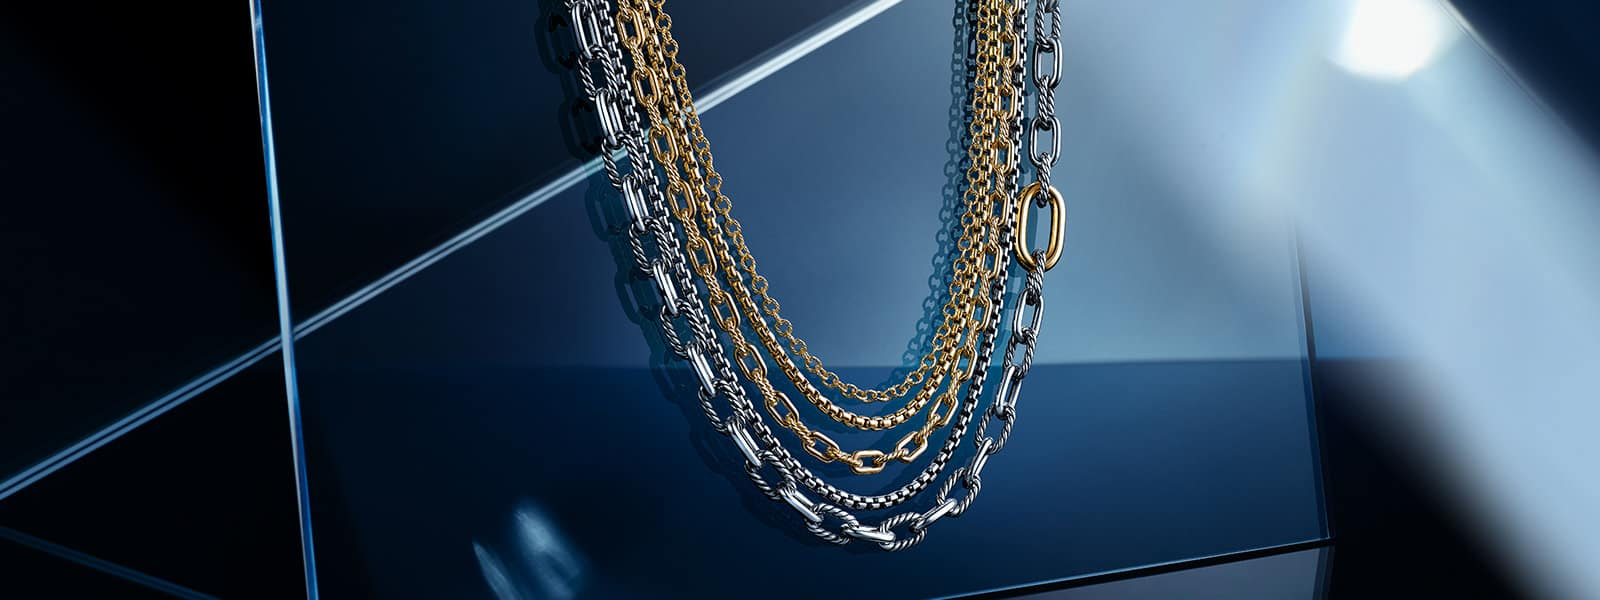 A color photograph shows five David Yurman Stax chain necklaces hanging in front of a reflective background with angular, multi-colored reflections of light and jewelry. The jewelry is crafted from 18K yellow gold or sterling silver with or without 18K yellow gold accents.